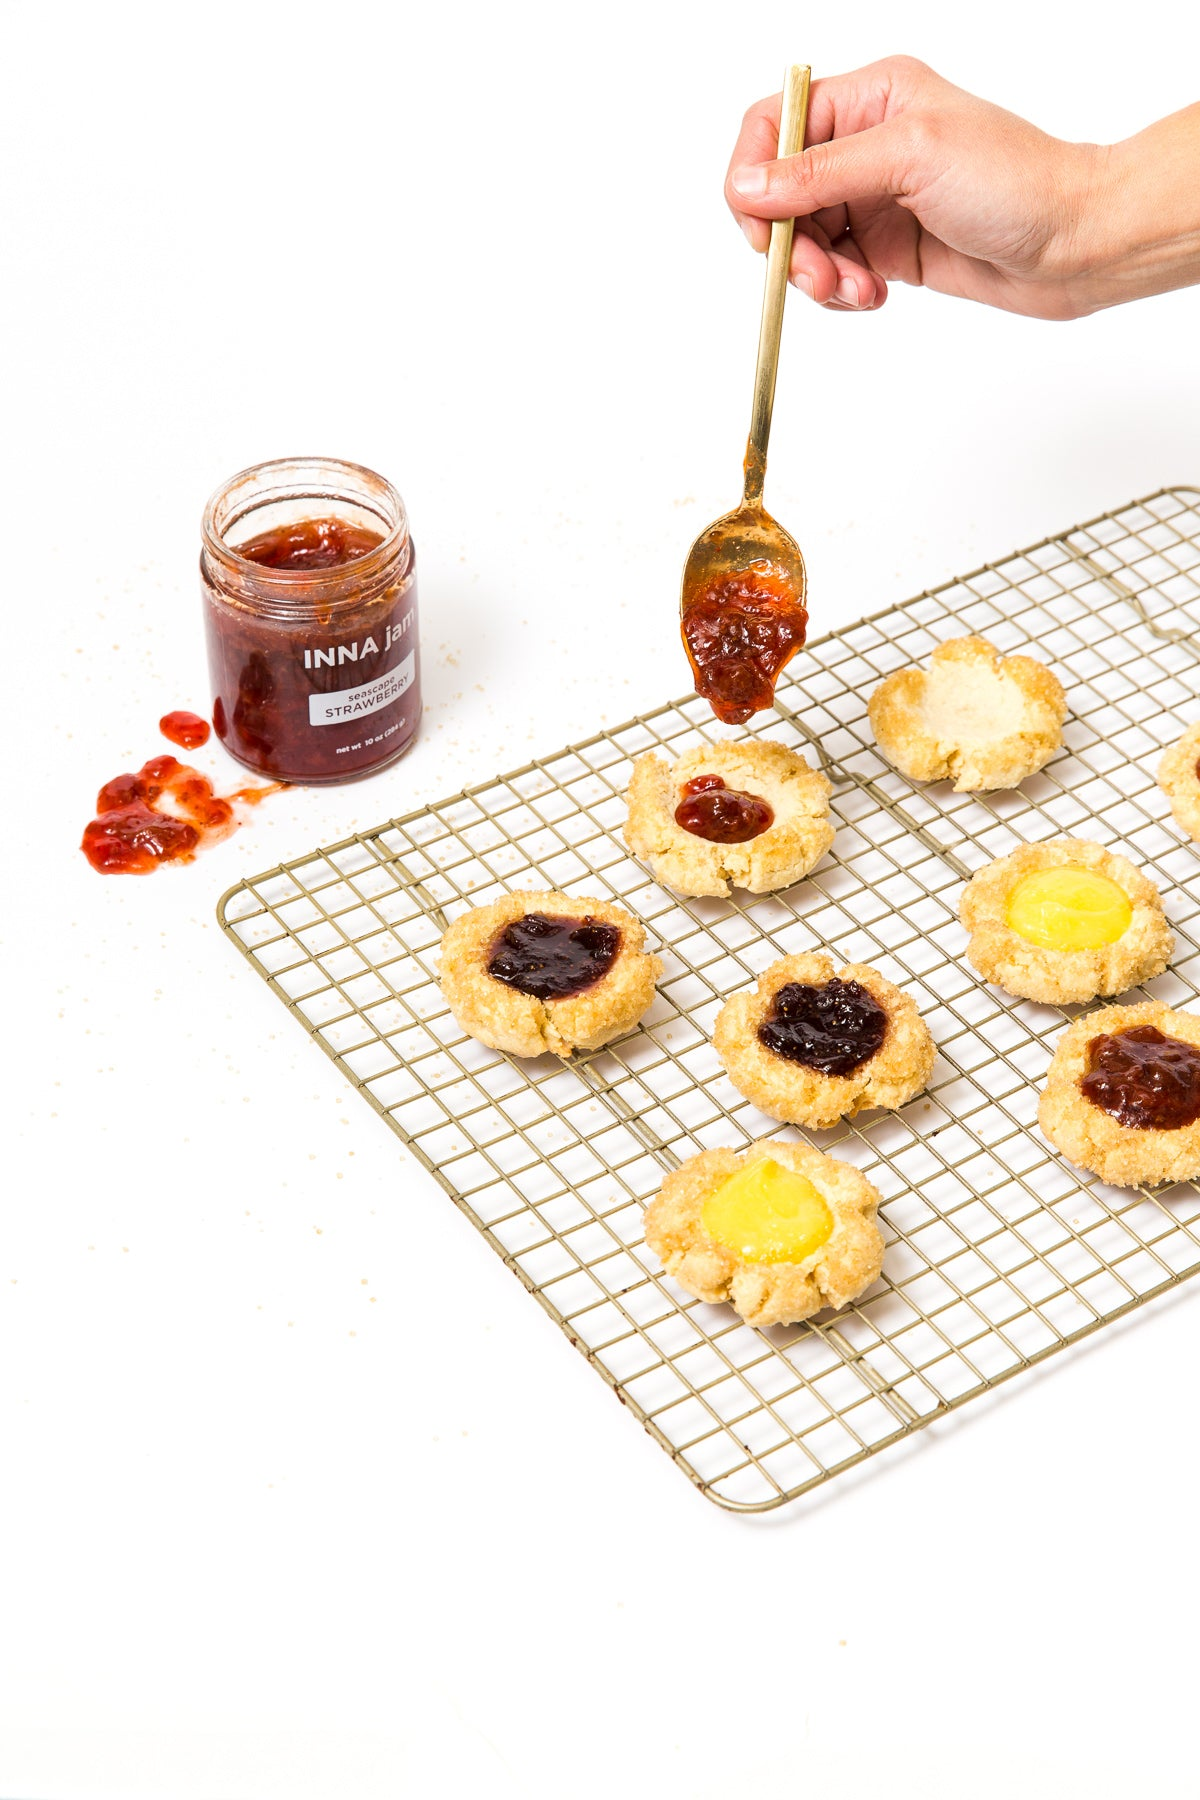 Image of baking rack with seven Miss Jones Baking Co Cake Batter Thumbprint Cookies being filled with jam filling.